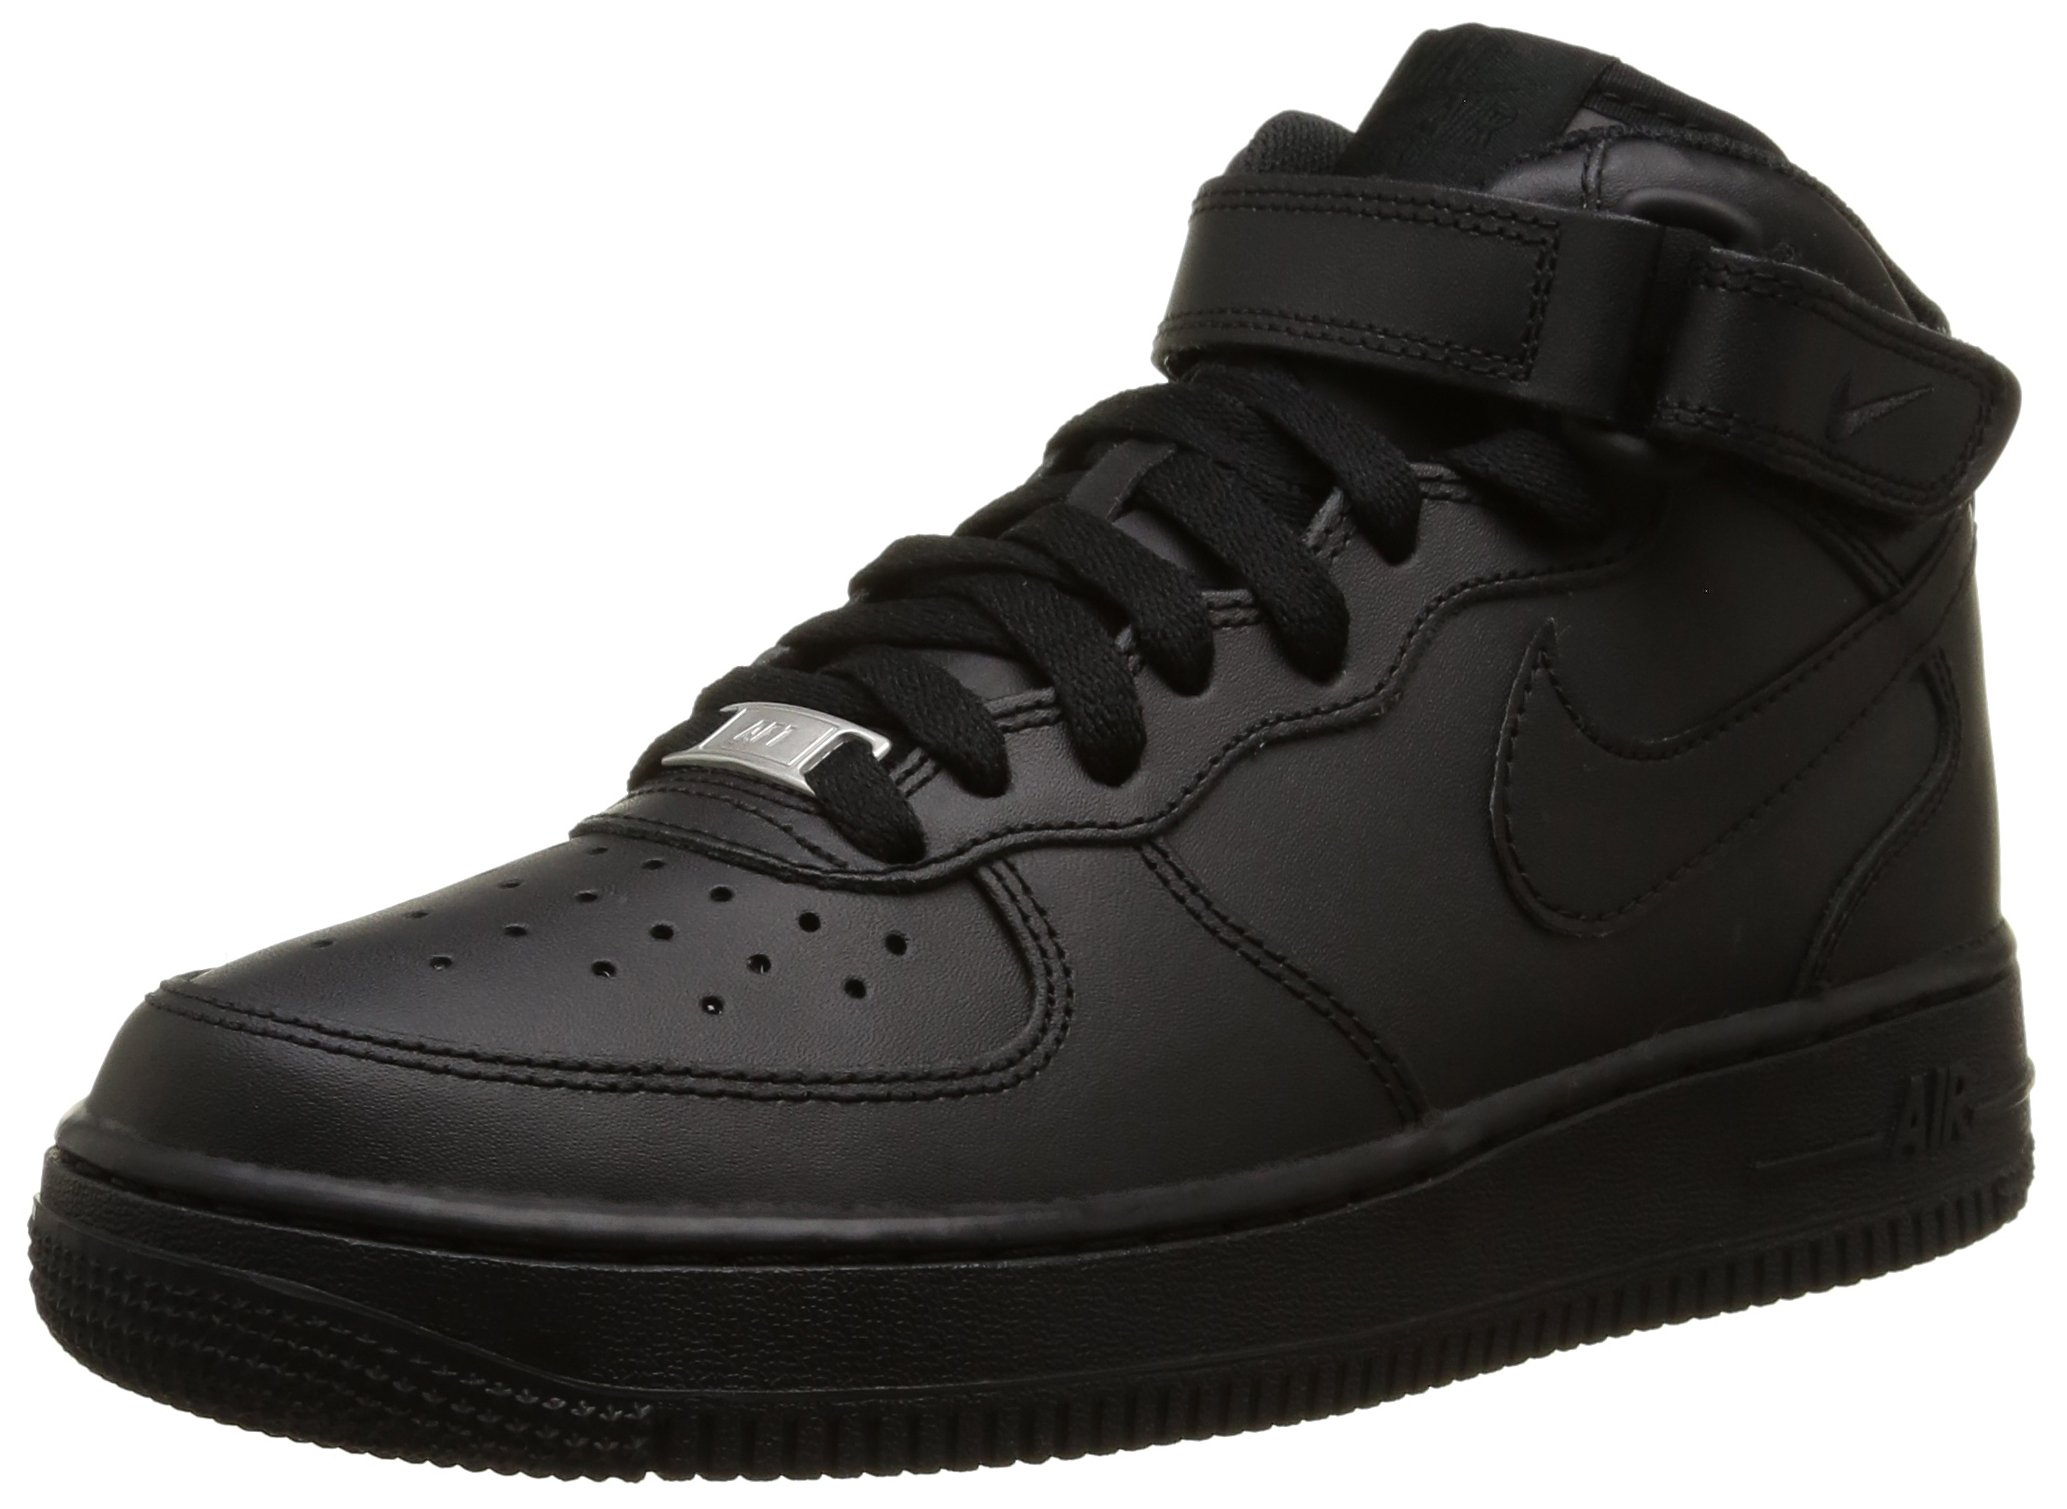 nike air force 1 nere e bianche